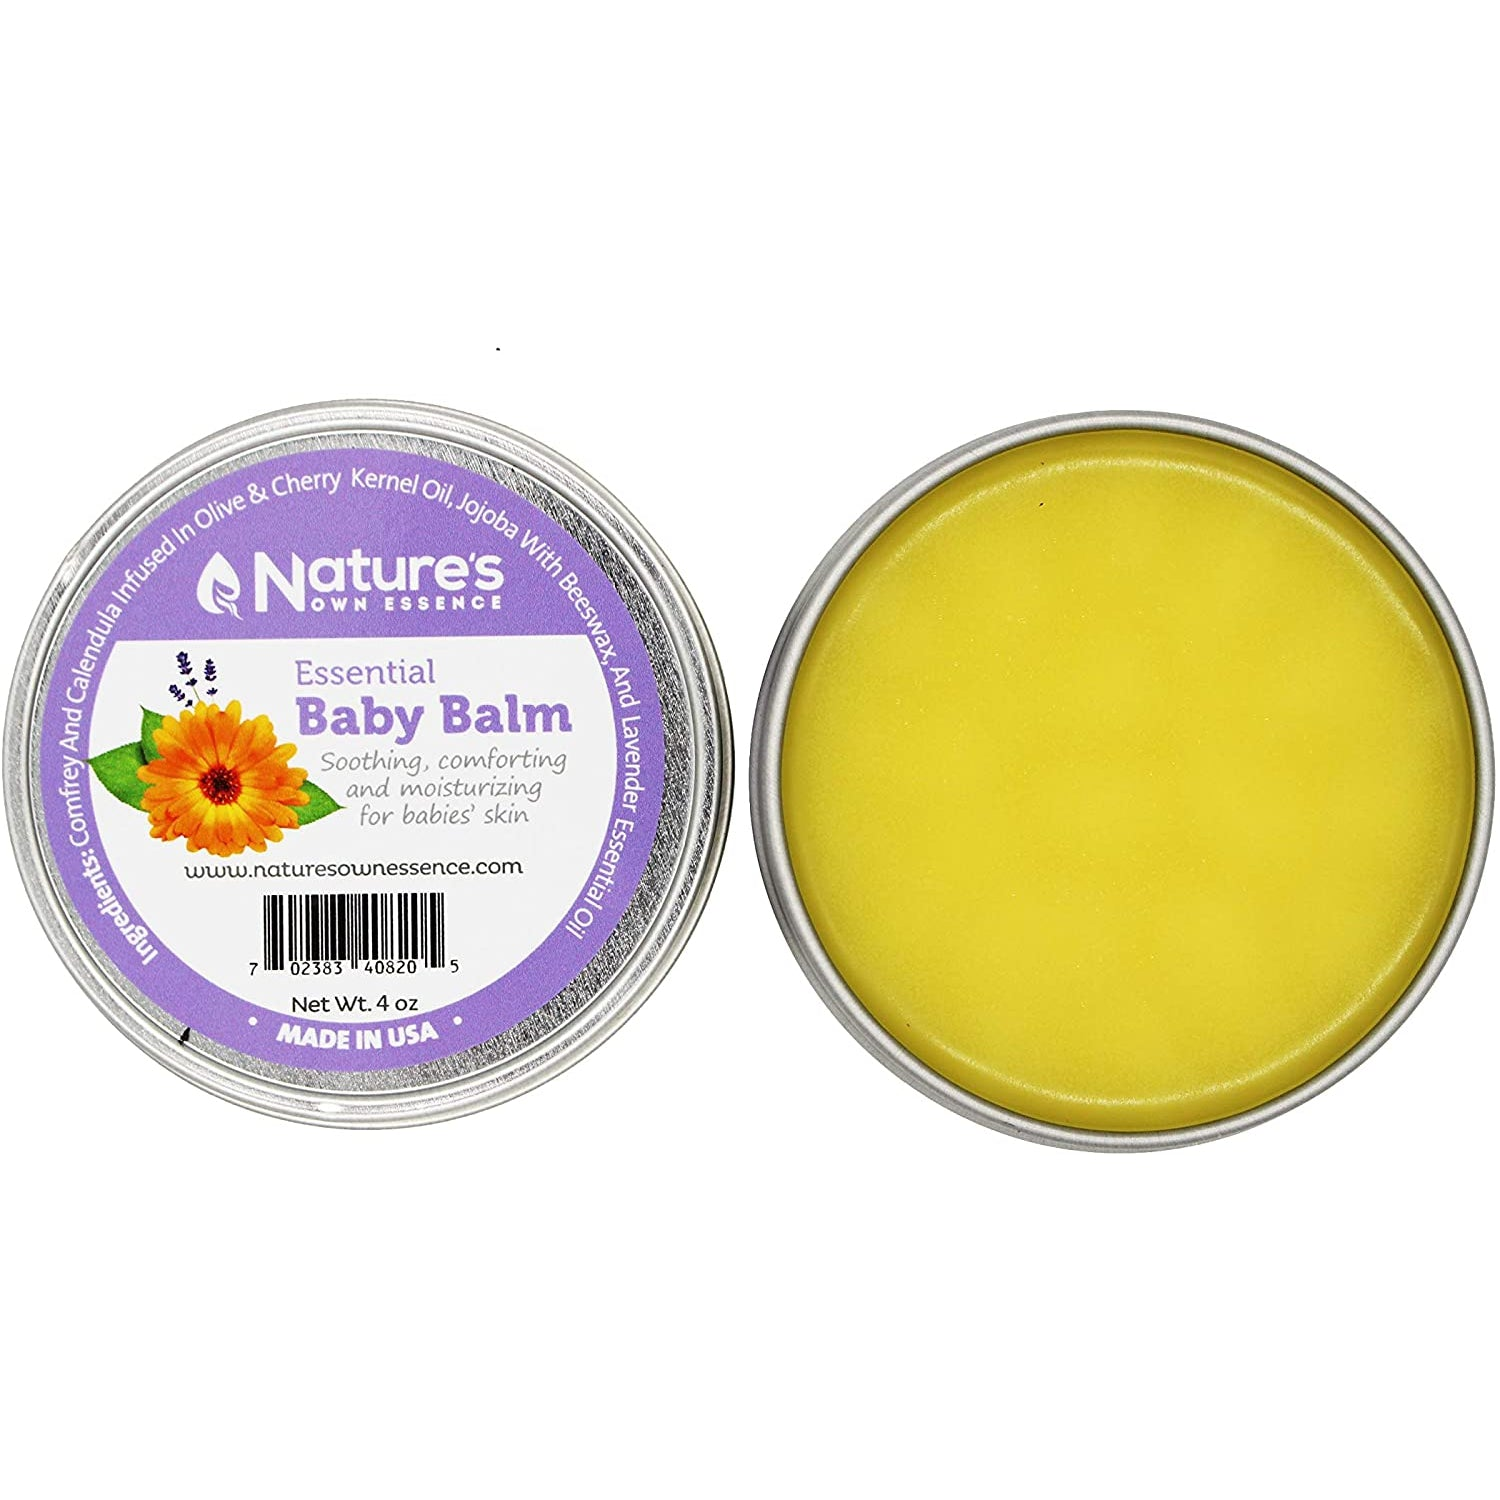 Nature's Own Essence Essential Baby Balm - Nature's Own Essence